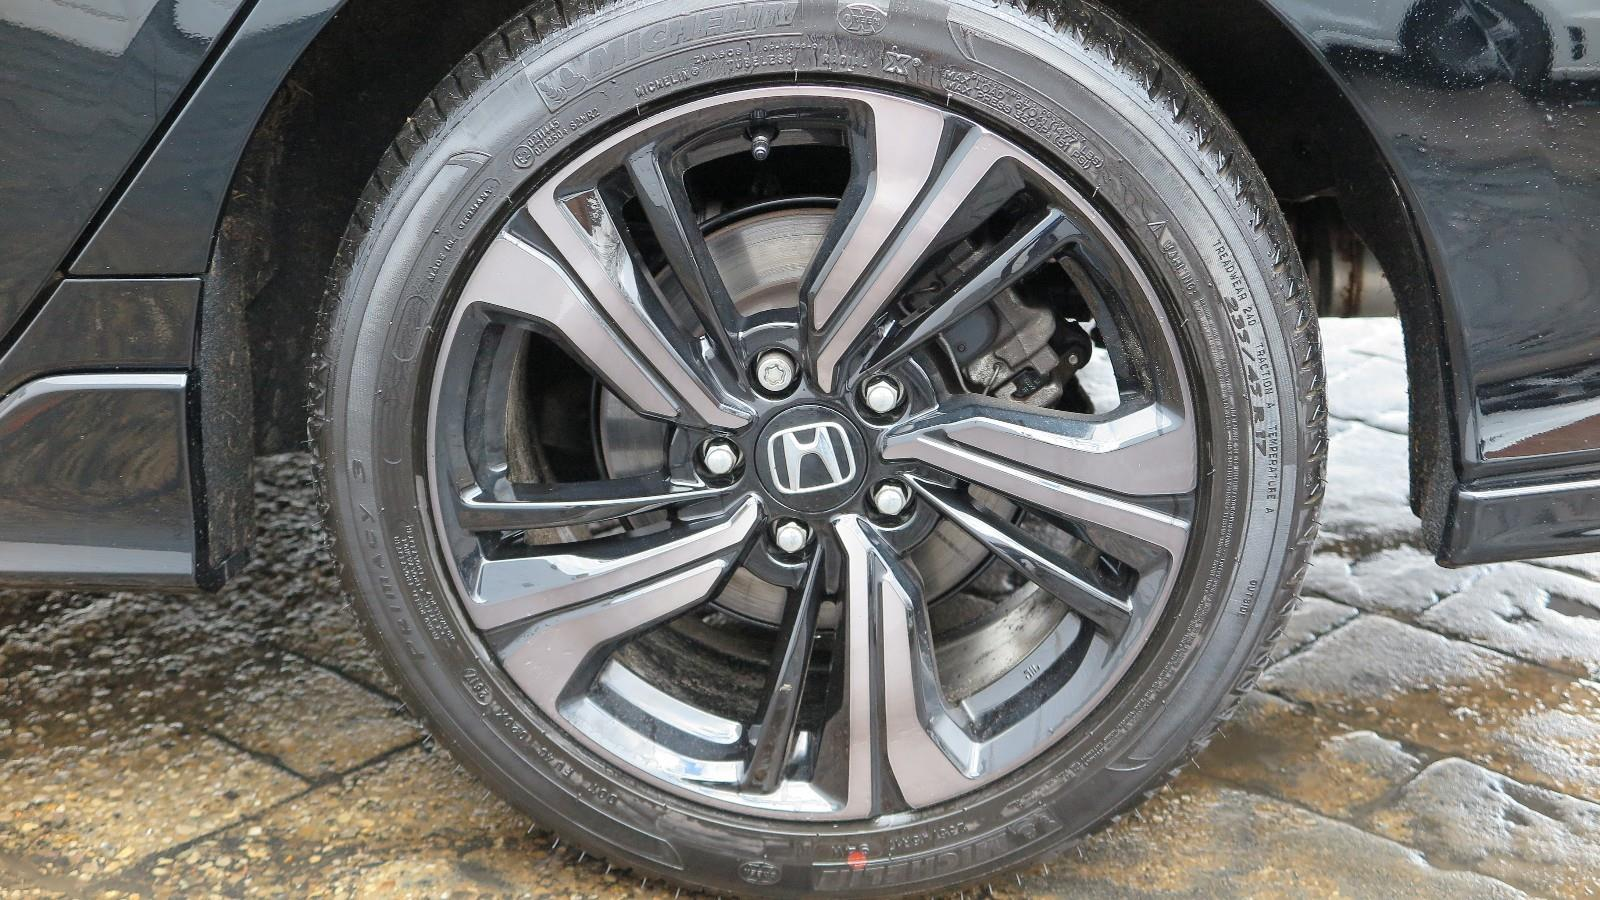 Factory Wheel Size Offset And Weights Page 8 2016 Honda Civic Forum 10th Gen Type R Forum Si Forum Civicx Com